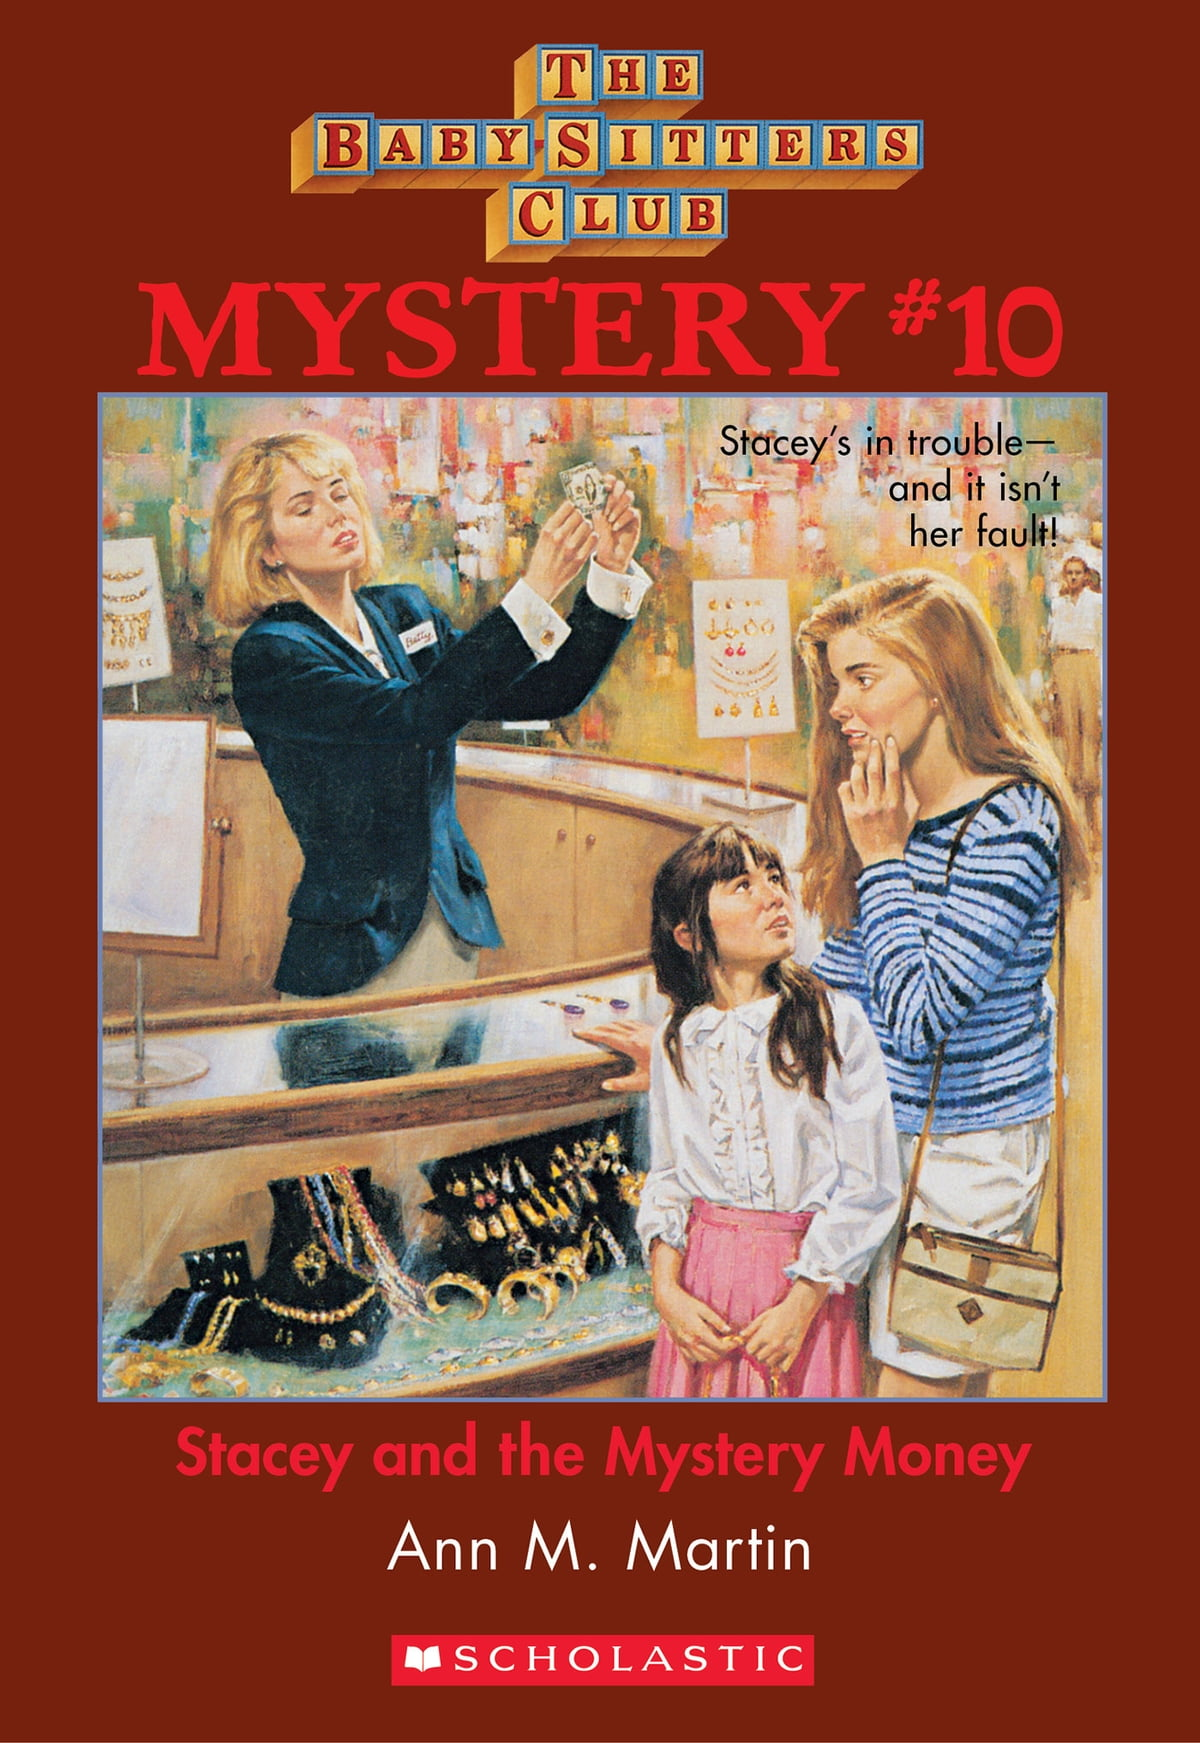 Baby Sitters Club Books